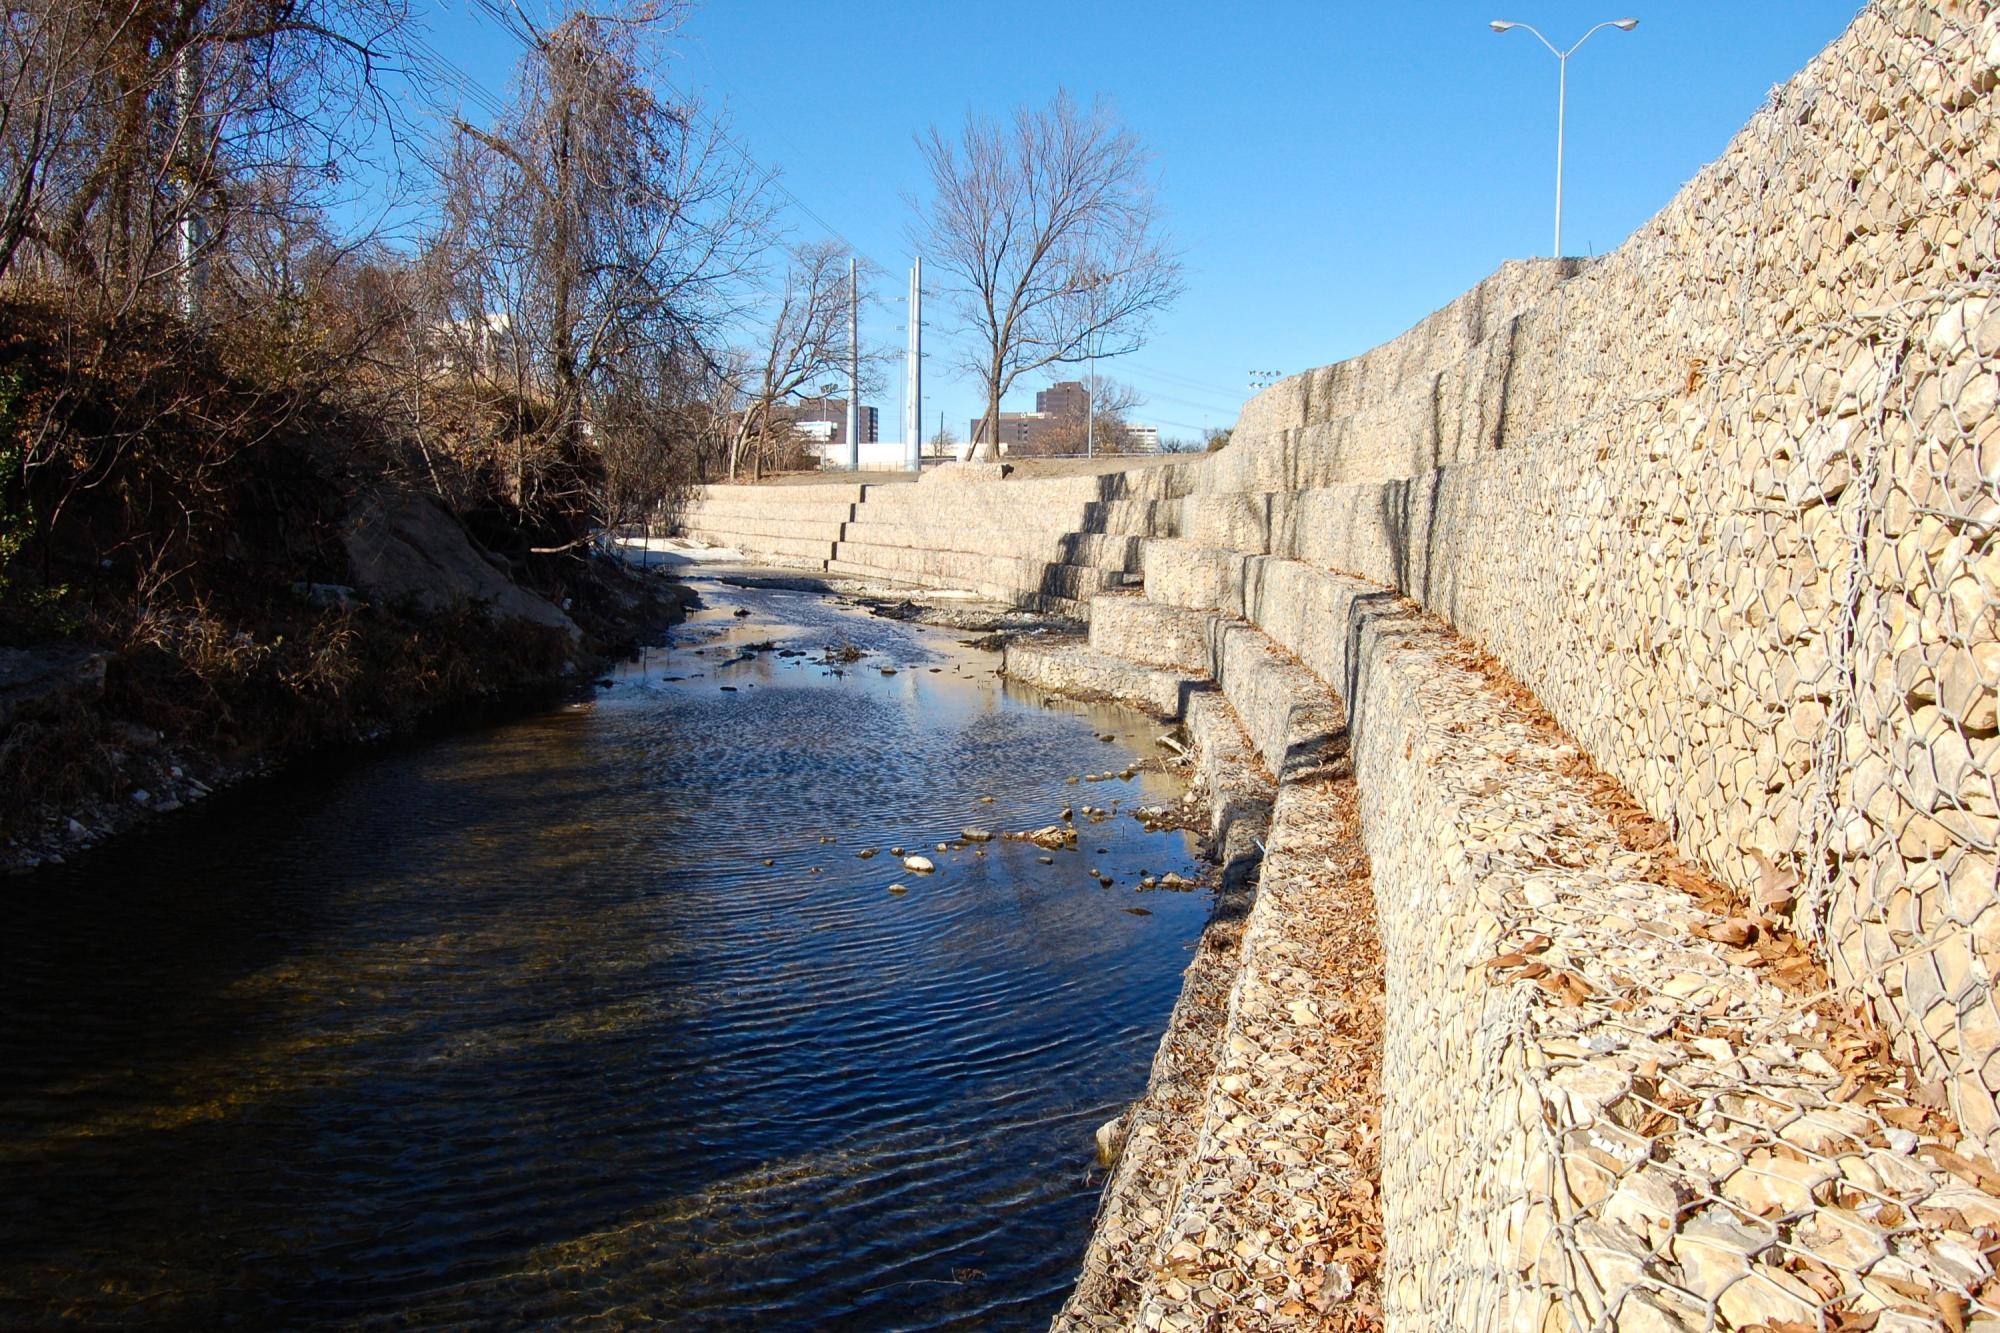 Cottonwood Creek Gabion Walls and Hike and Bike Trails